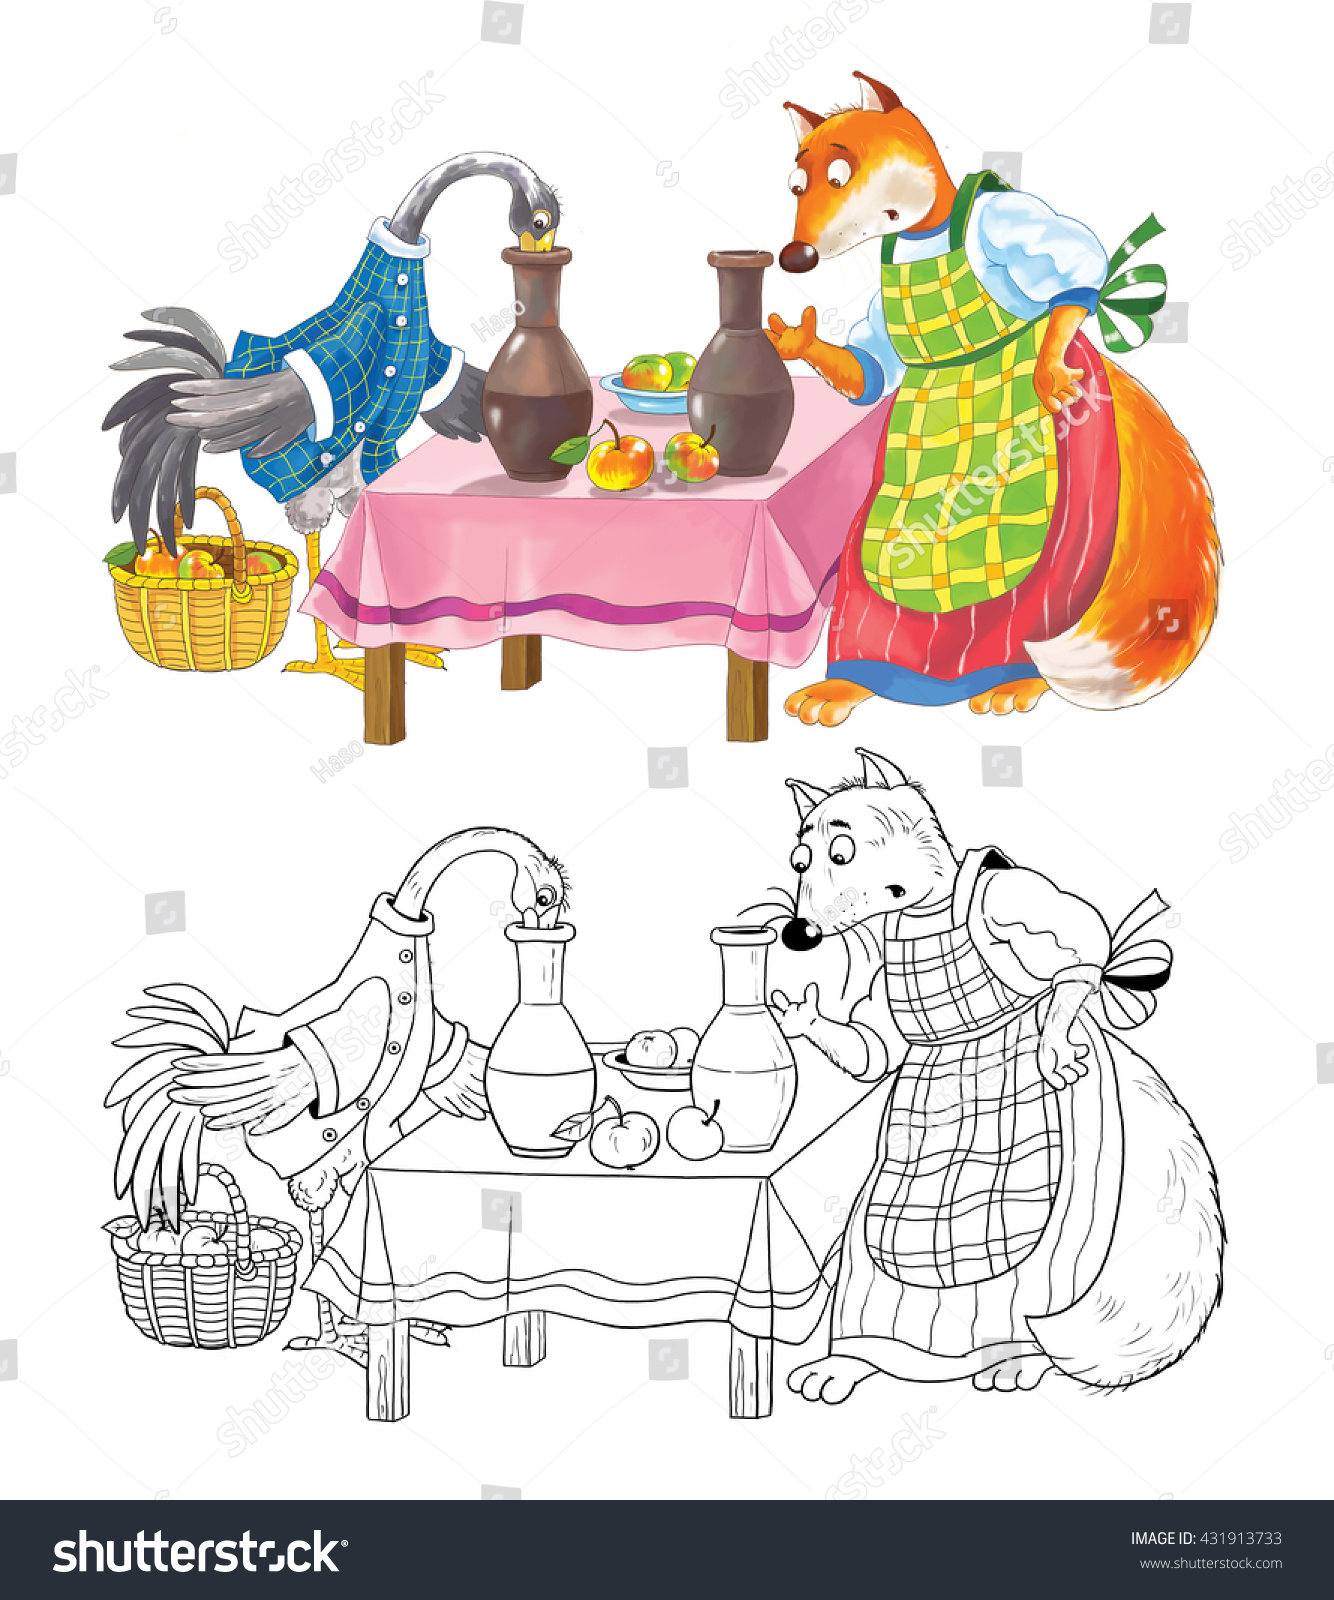 Fox Storkfairy Tale Coloring Book Coloring Stock Illustration ...